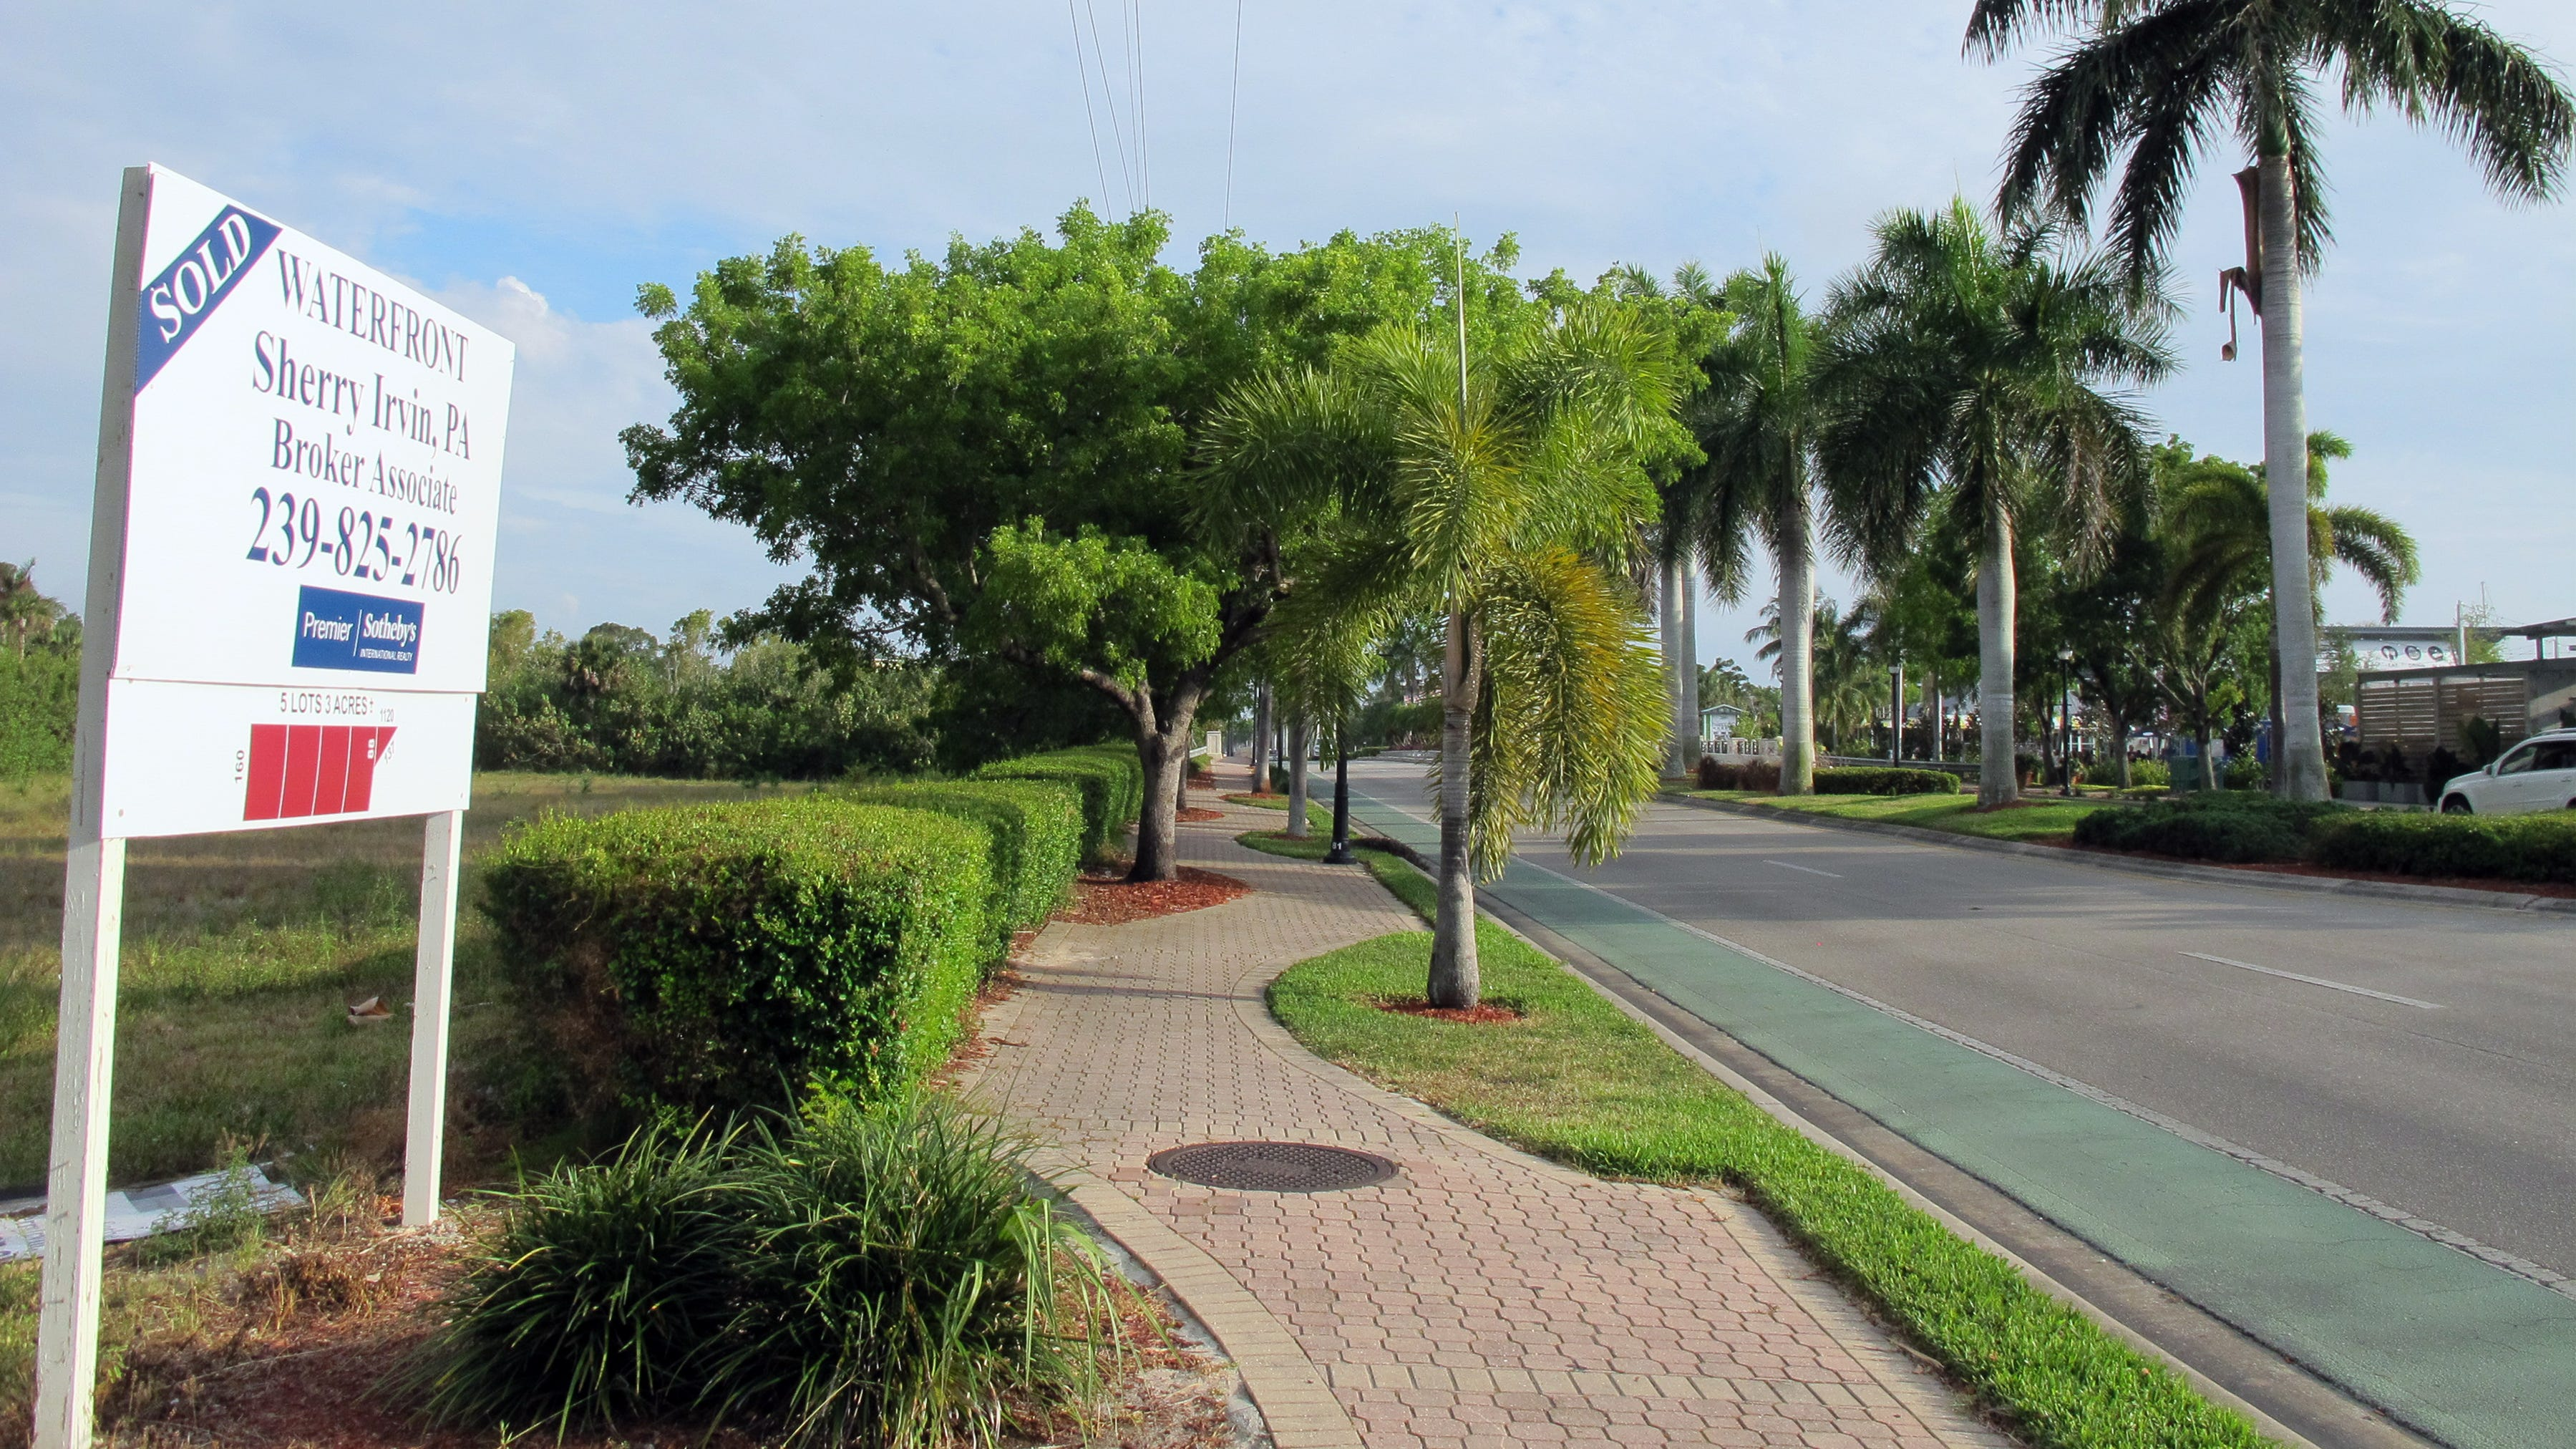 More redevelopment projects are coming to Bayshore Drive in East Naples.